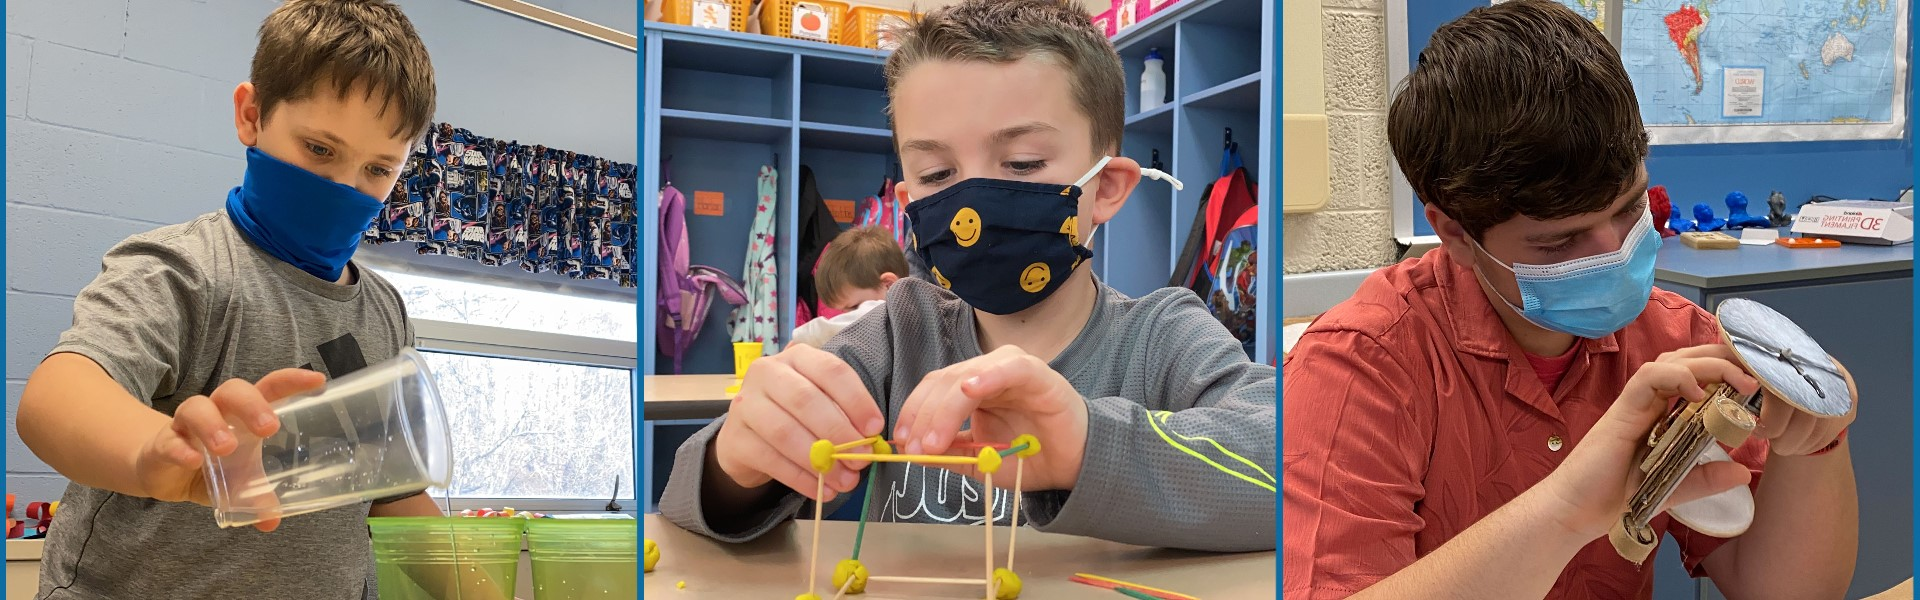 K-12 students working on STEM related projects